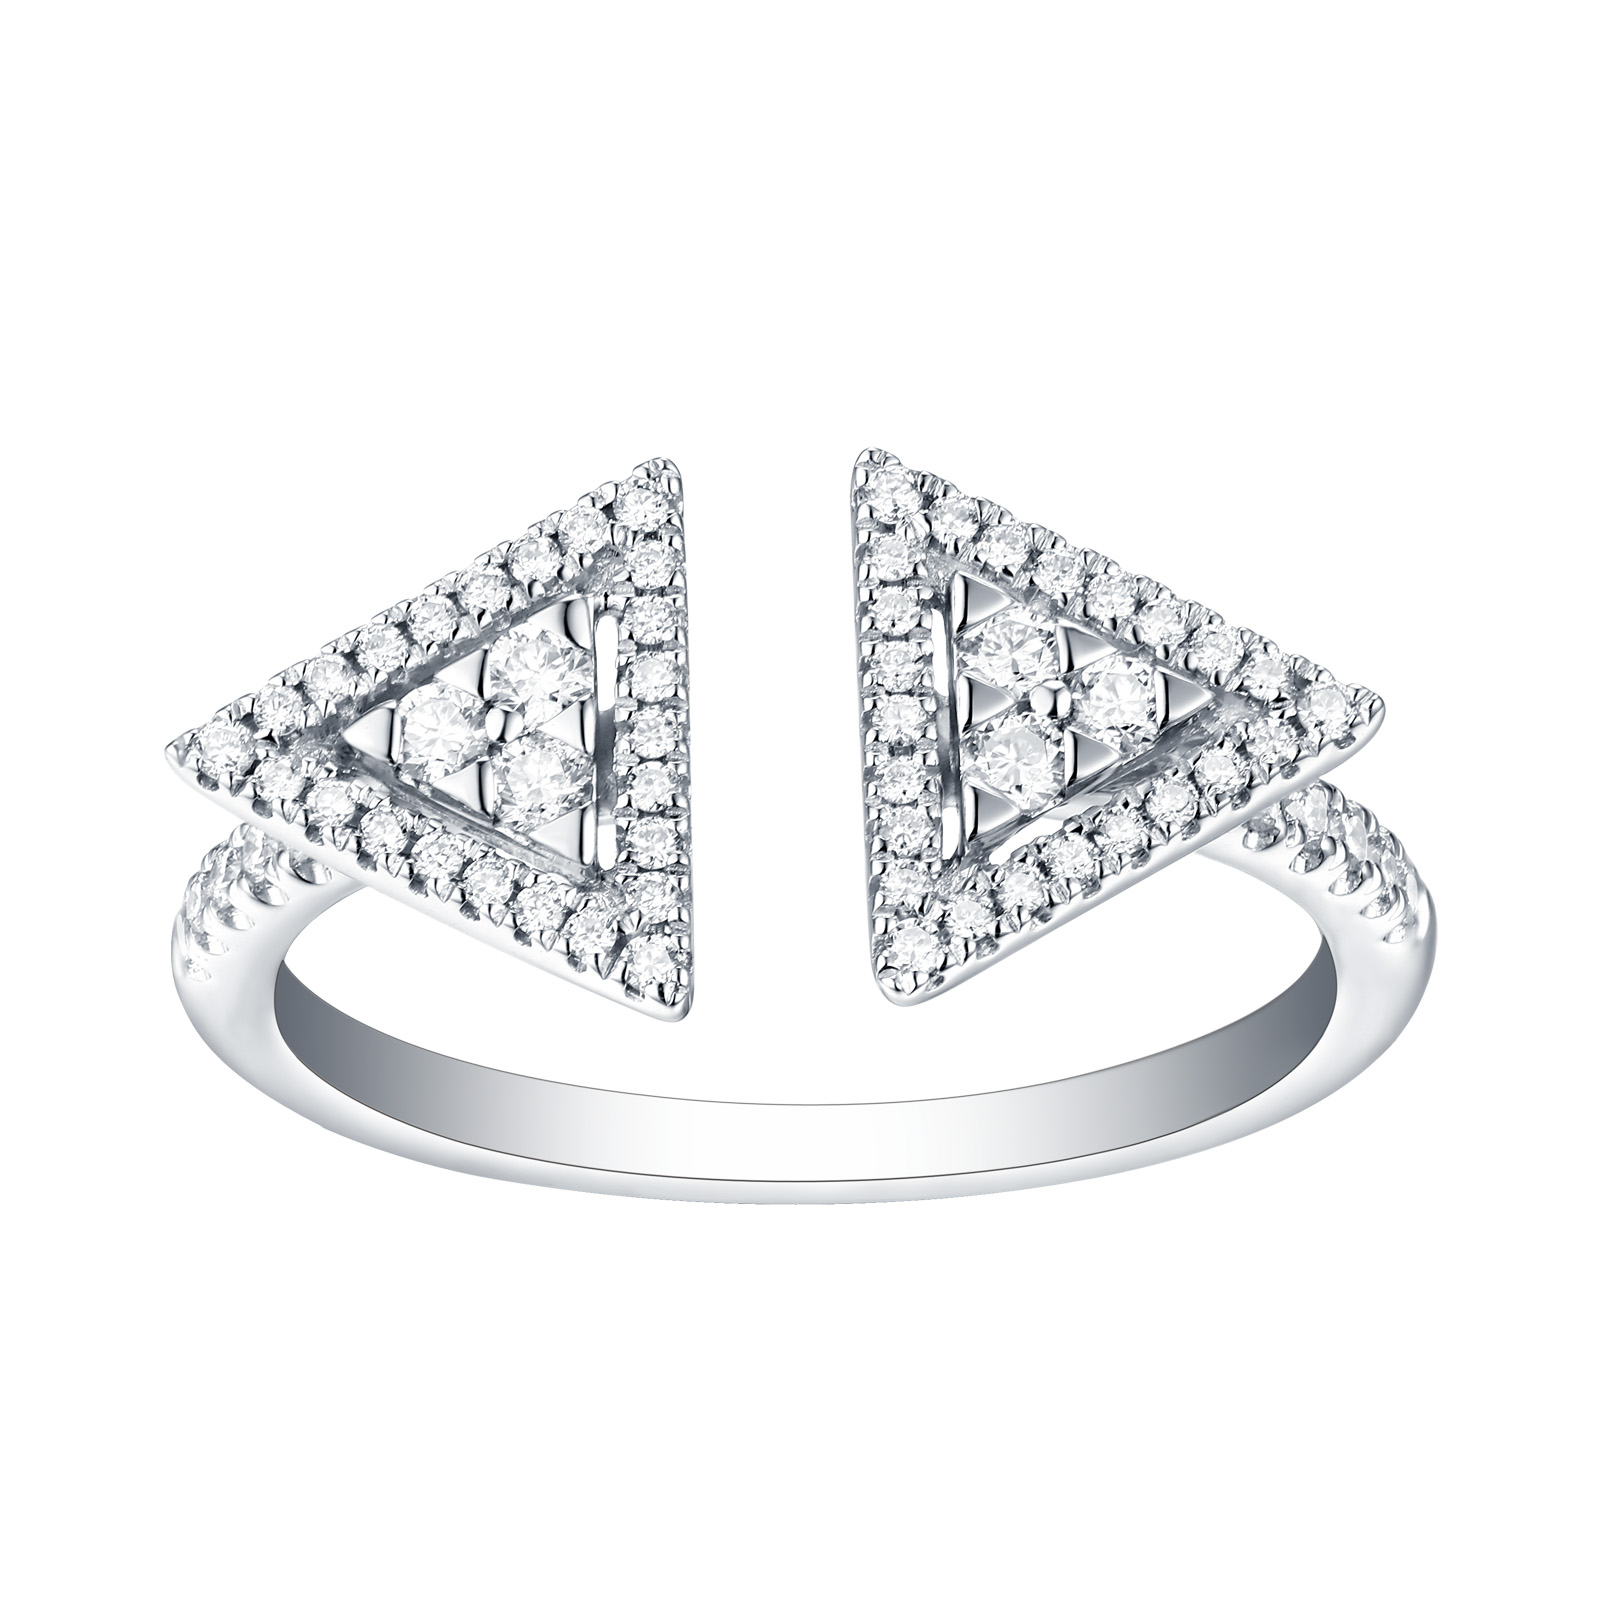 R25083WHT- 14K White Gold Diamond Ring, 0.33 TCW